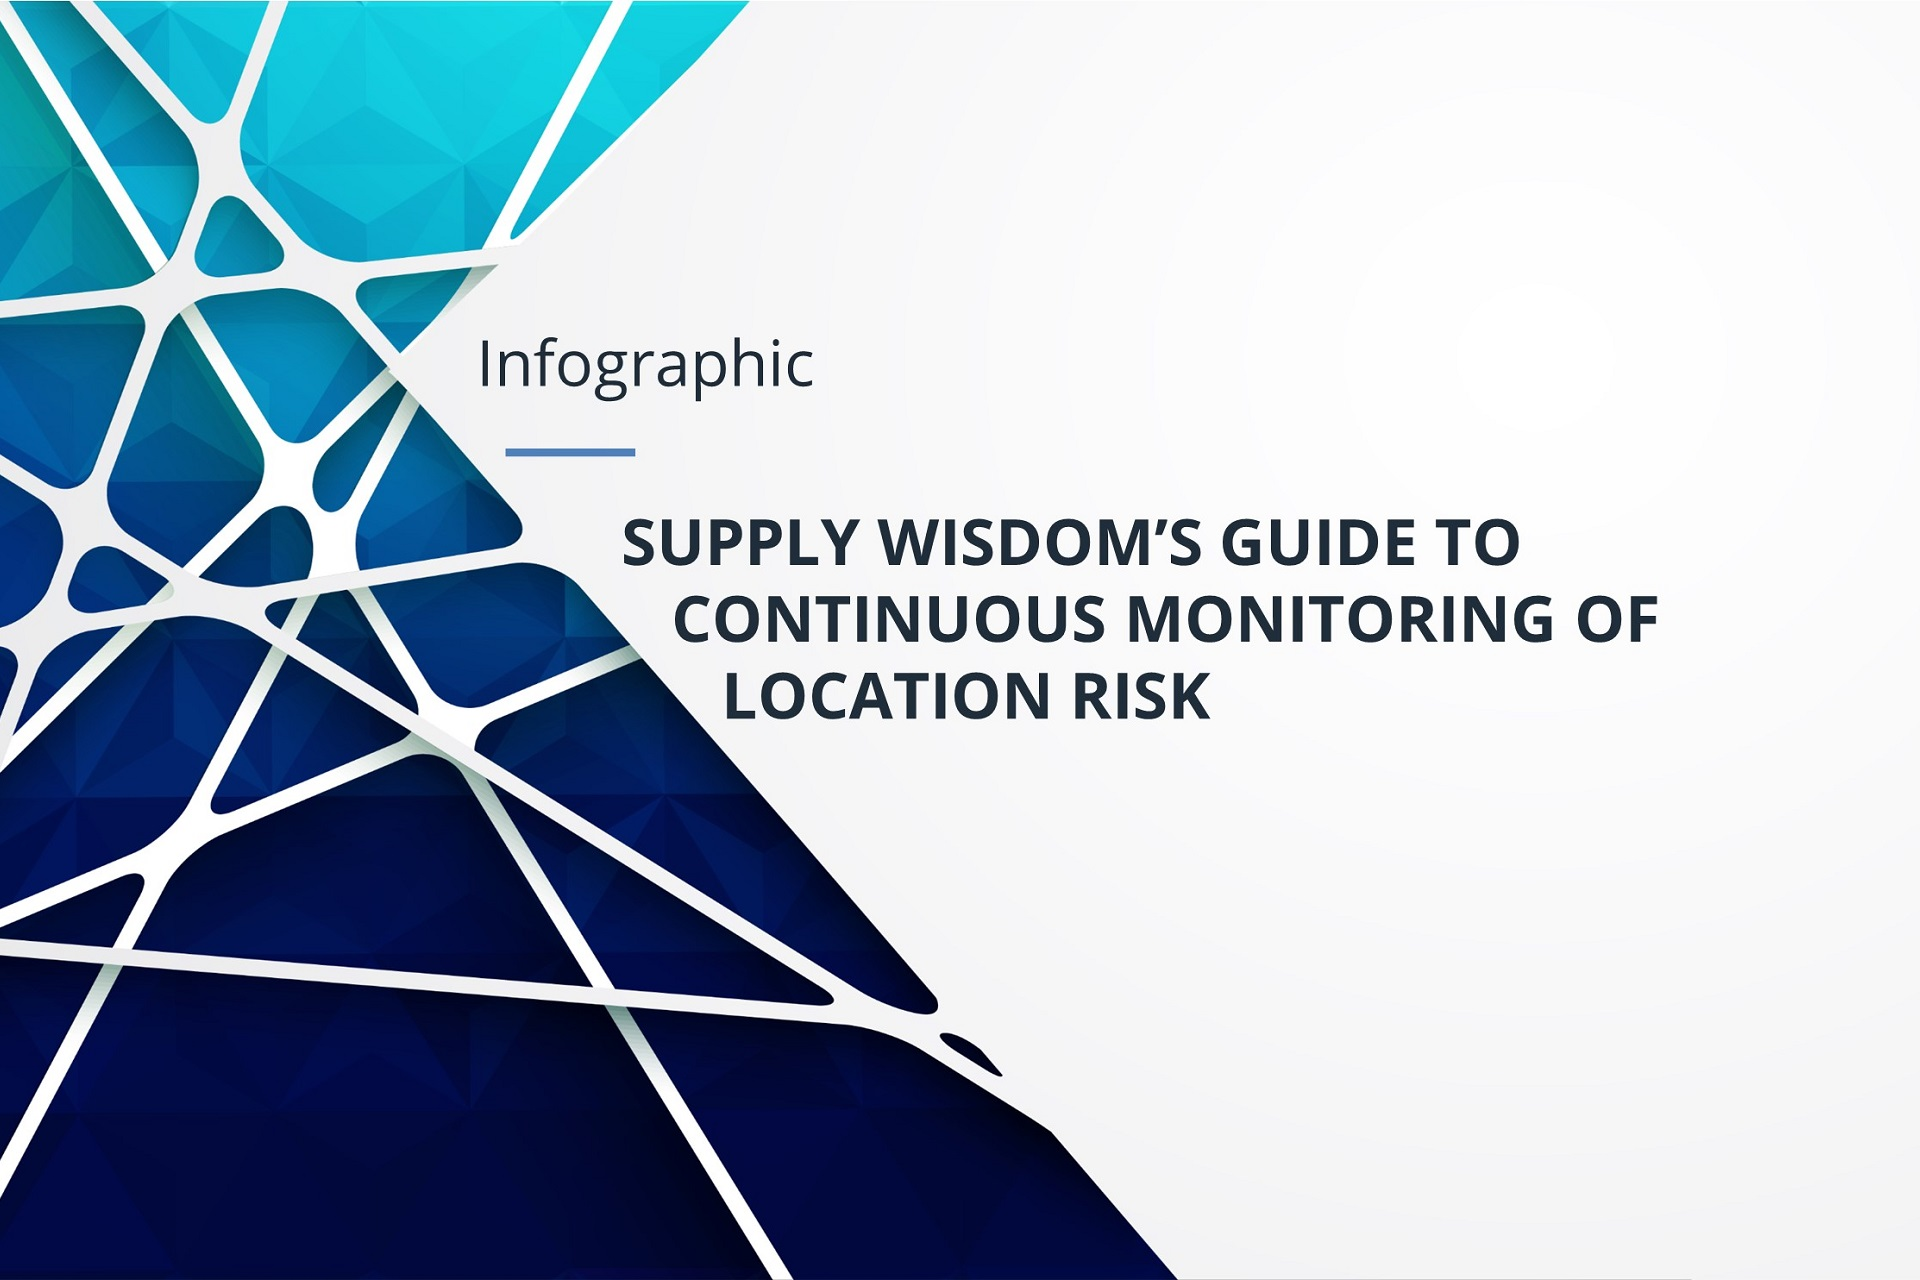 Supply Wisdom Continuous Location Risk Monitoring Infographic